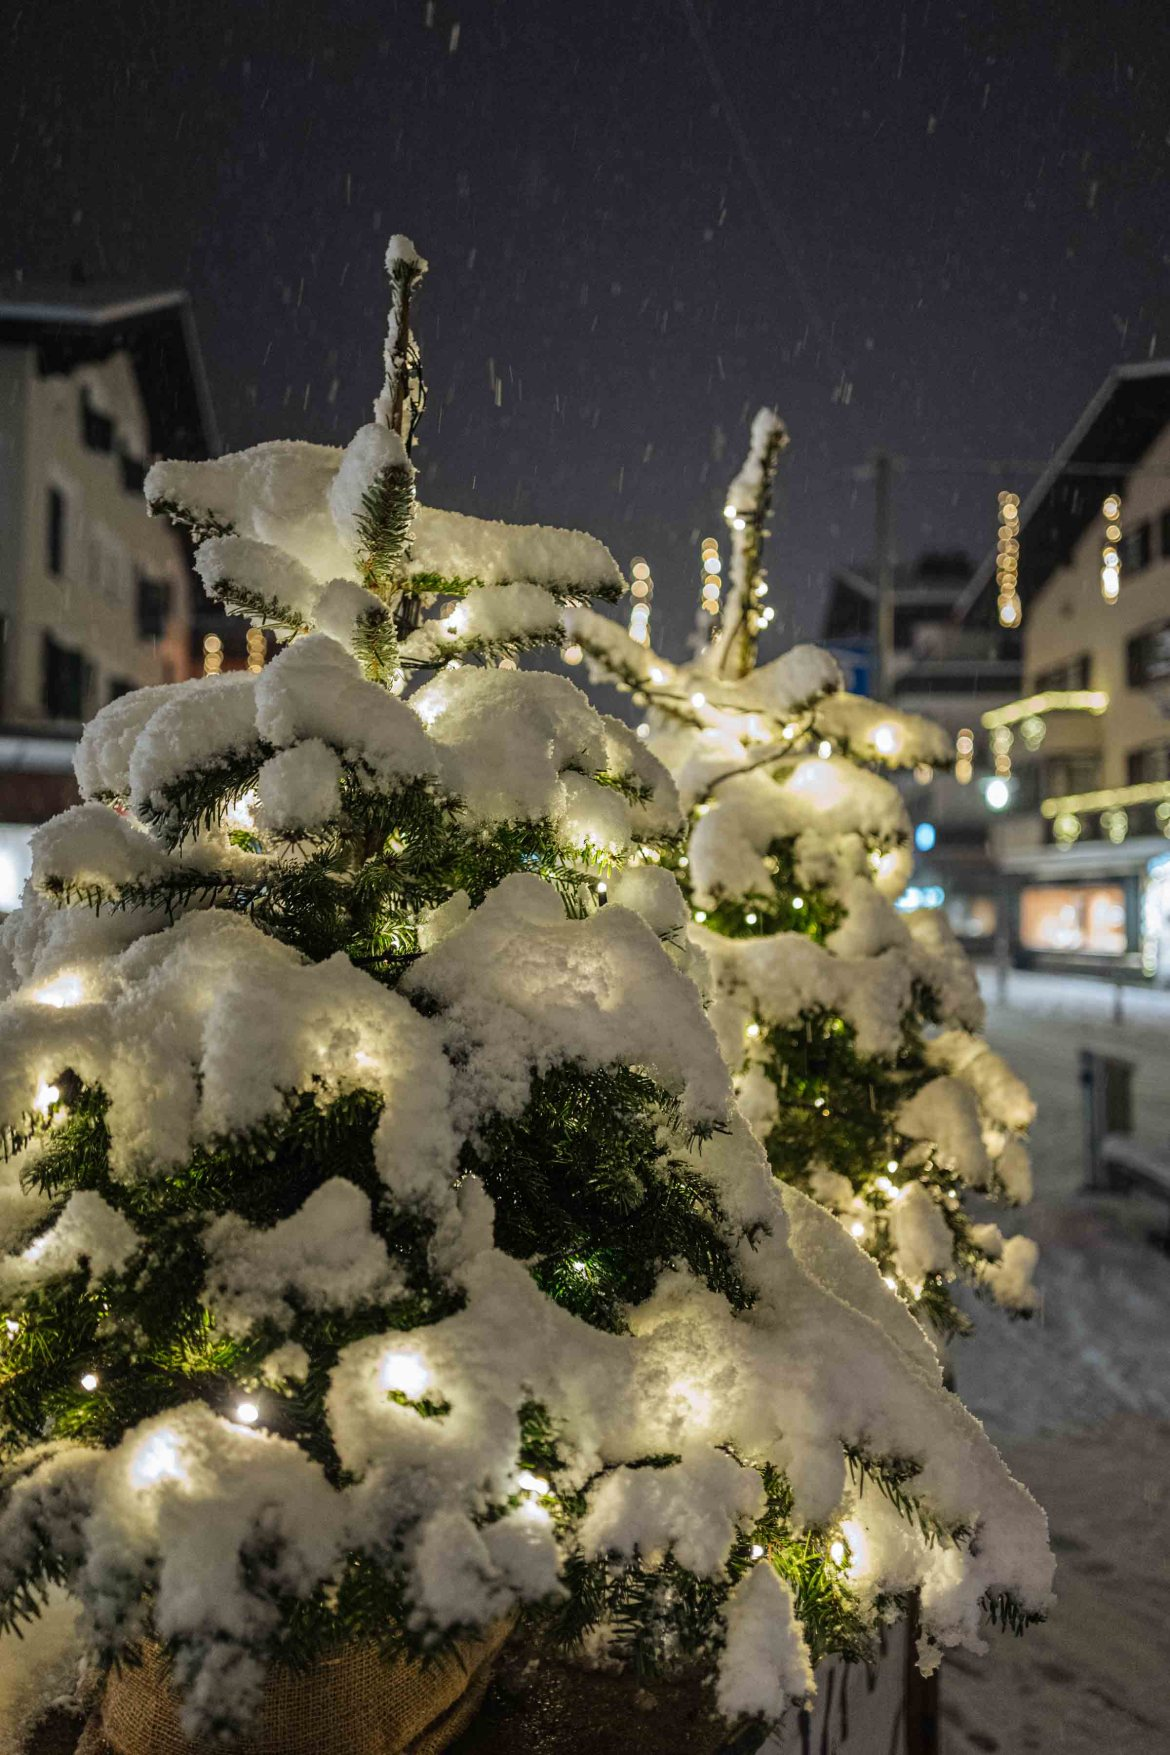 The view of Klosters at night with fresh snow on the pine trees | The Taste Edit #travel #switzerland #swiss #snow